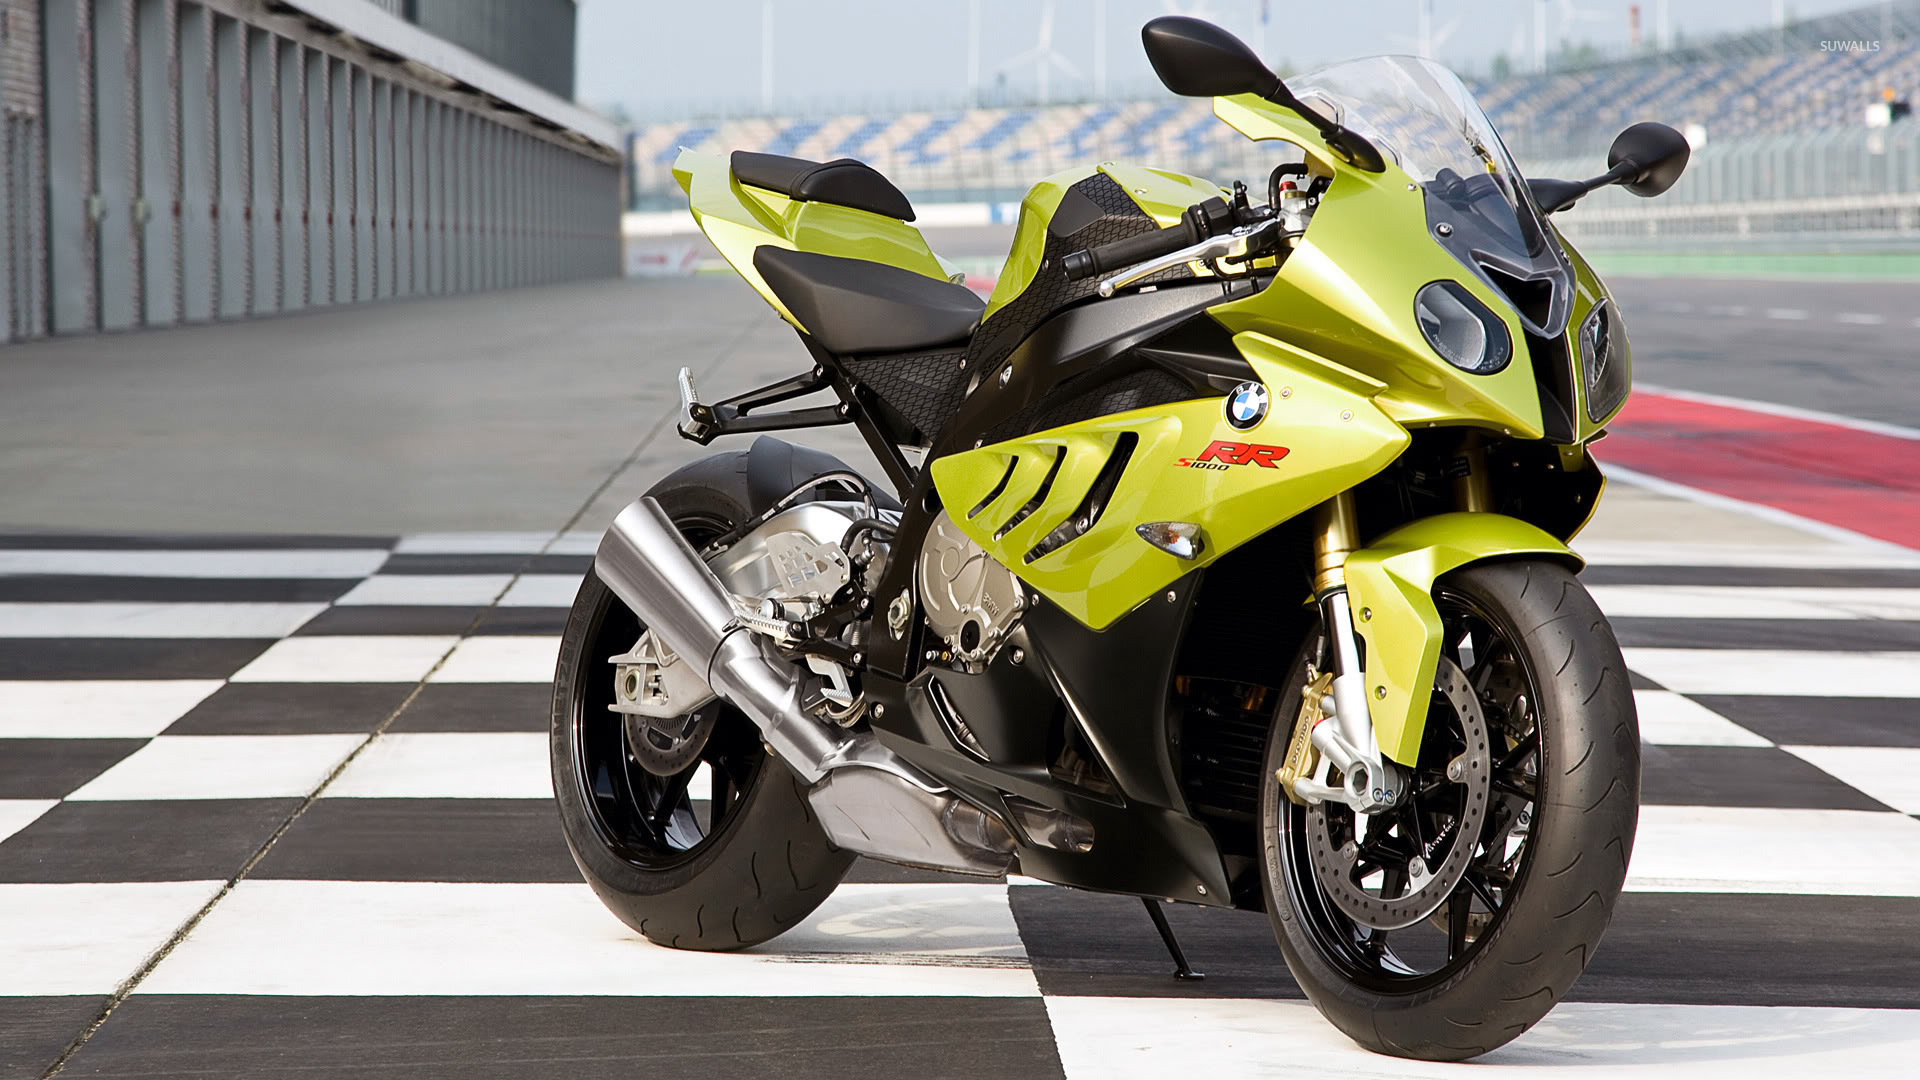 Bmw S1000rr Wallpaper Motorcycle Wallpapers 439